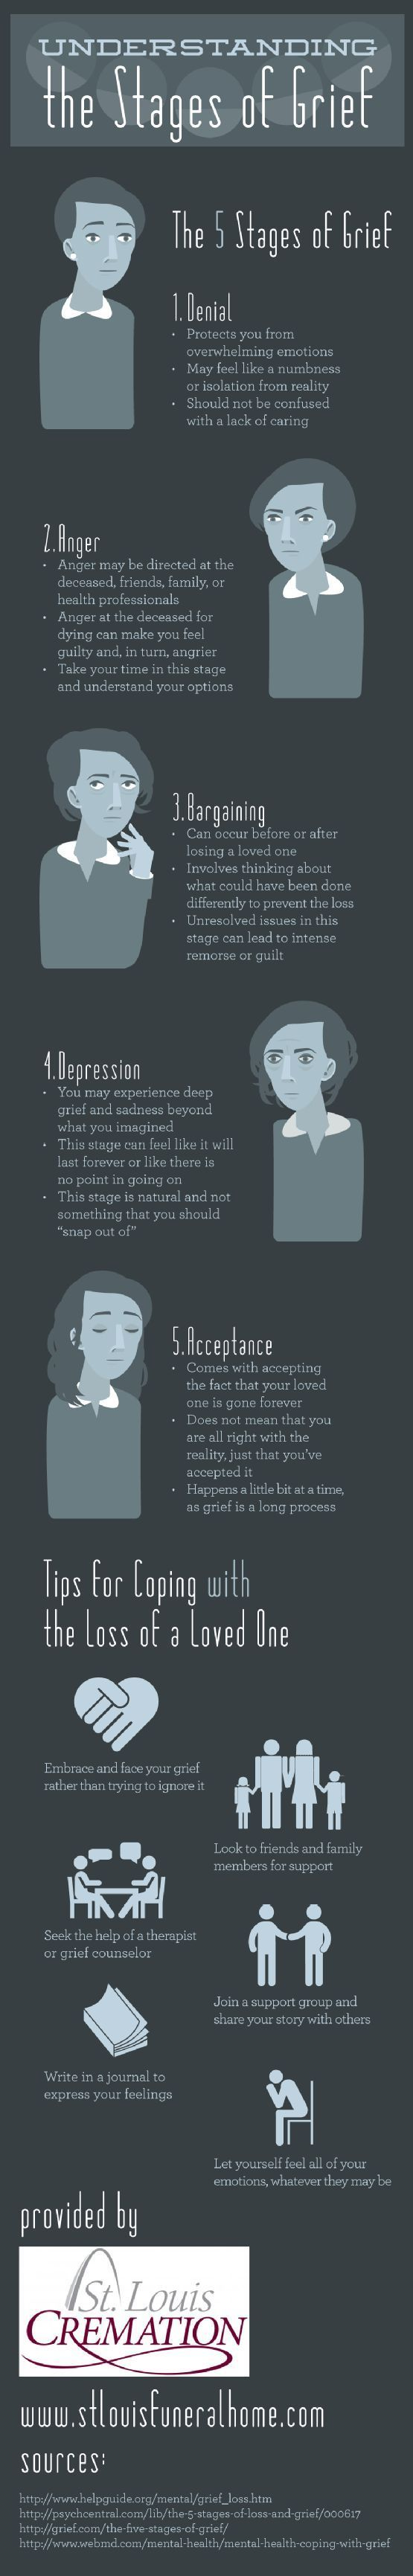 Its confusing when u mourn what might have been Understanding The Stages Of Grief #Infographic #Health #Grief